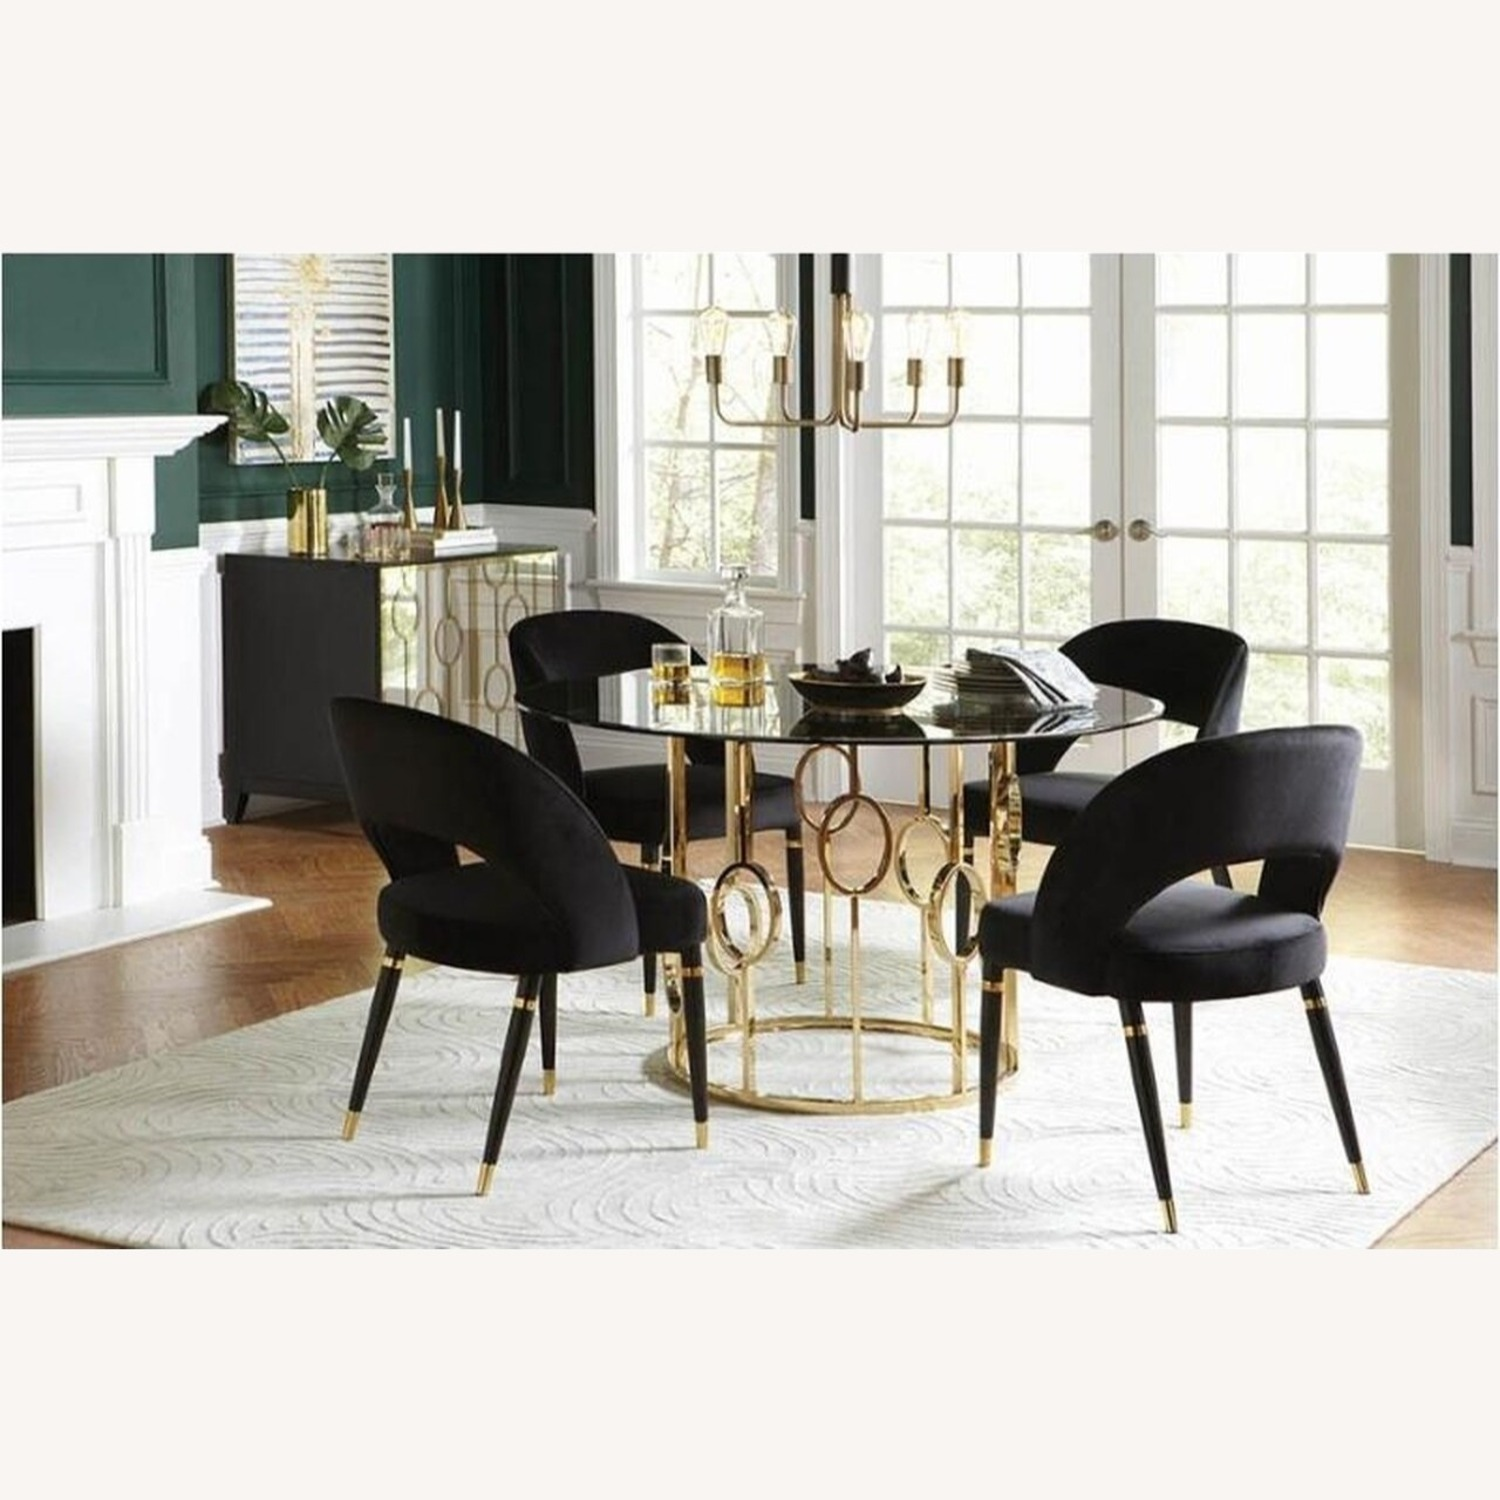 Elegant Round Dining Table In Smoke Glass Top - image-2